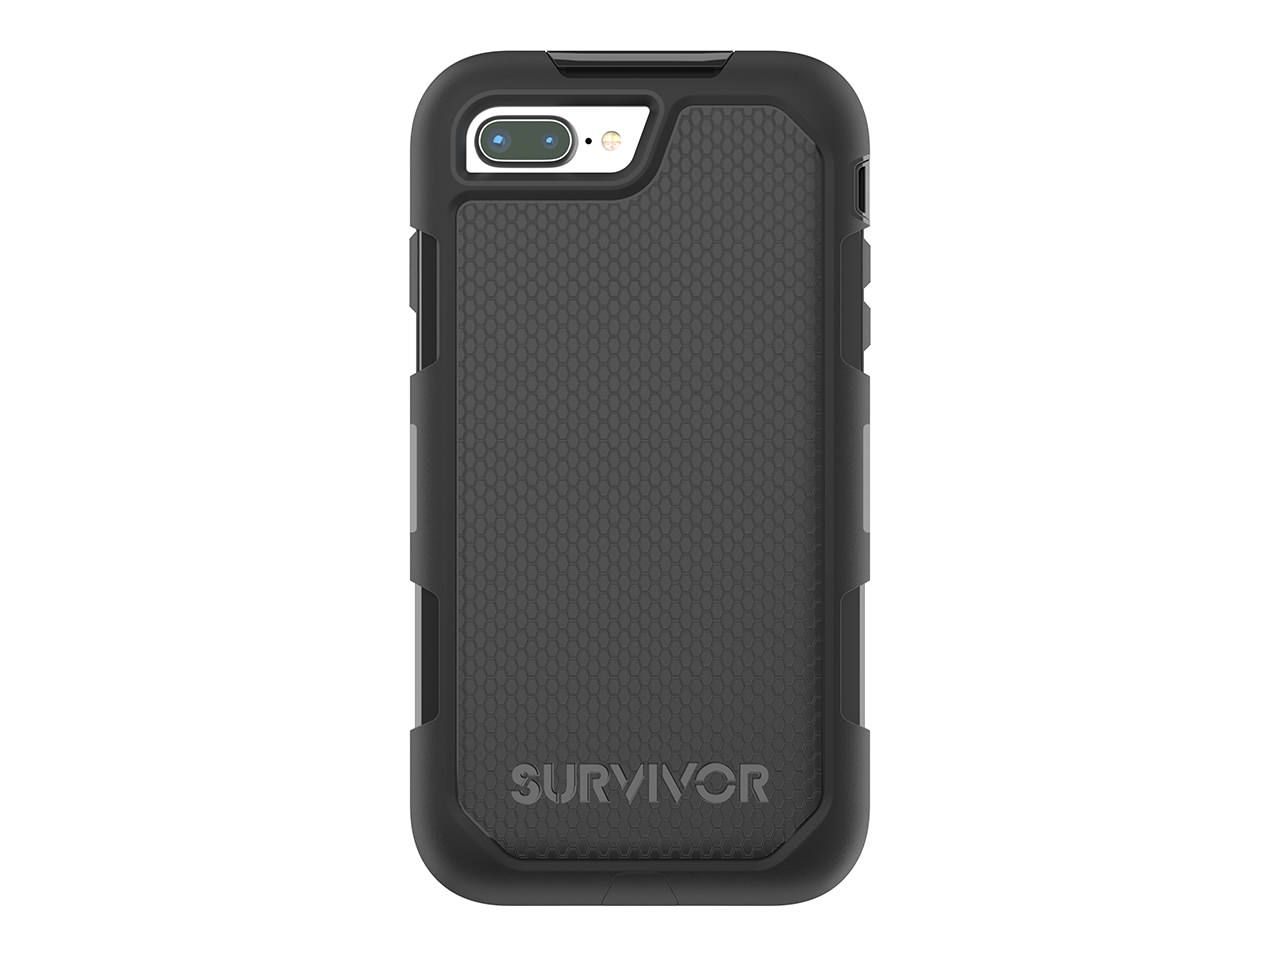 gb42824-2-suvivor-extreme-iphone-8-plus-black-black-01.jpg